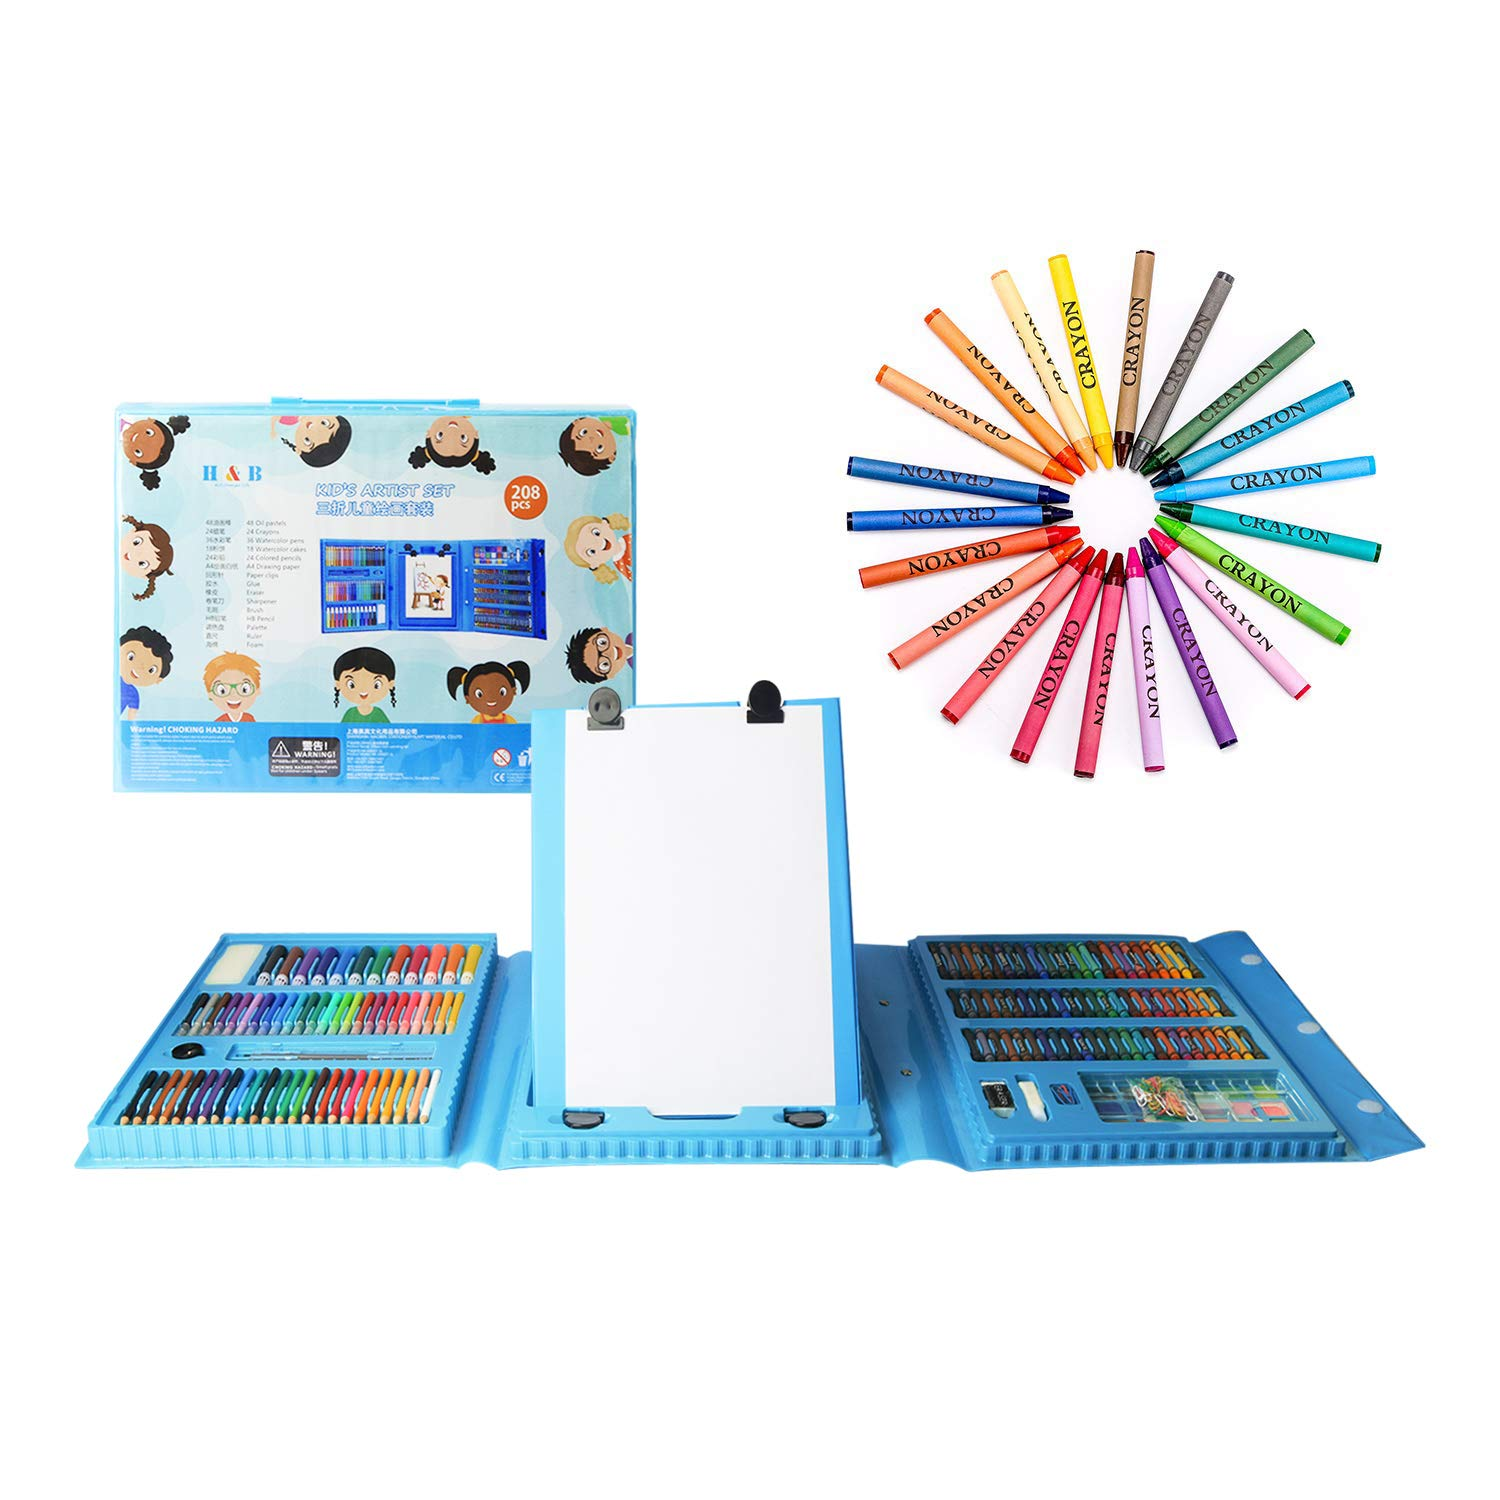 H & B Kids Art Supplies 208-Piece for Painting & Drawing, Art Set Case, Portable Art Box, Oil Pastels, Crayons, Colored Pencils, Markers, Great Gift for Kids 3-12, Girls, Boys, Teens, Beginners, Blue